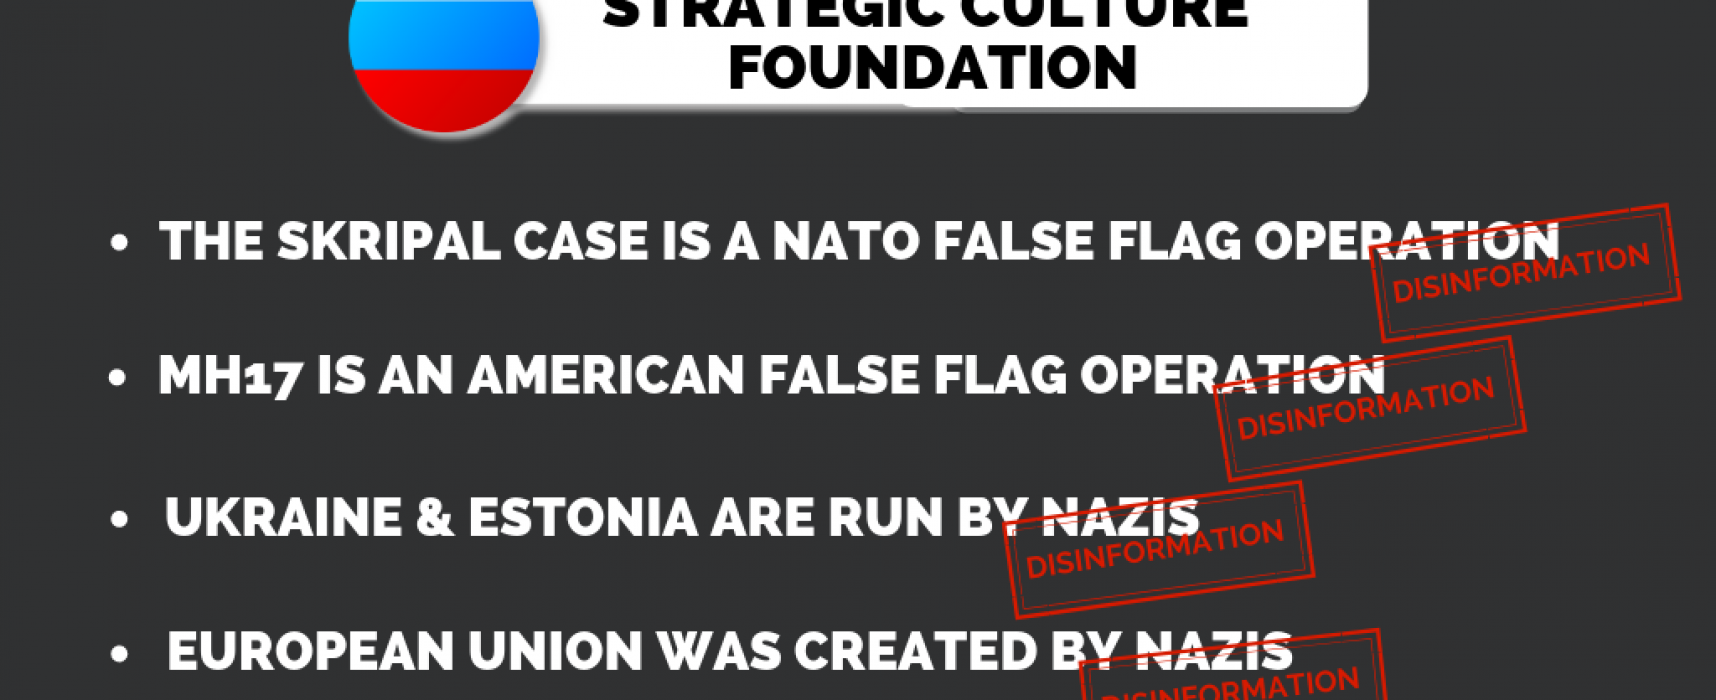 An unfounded foundation